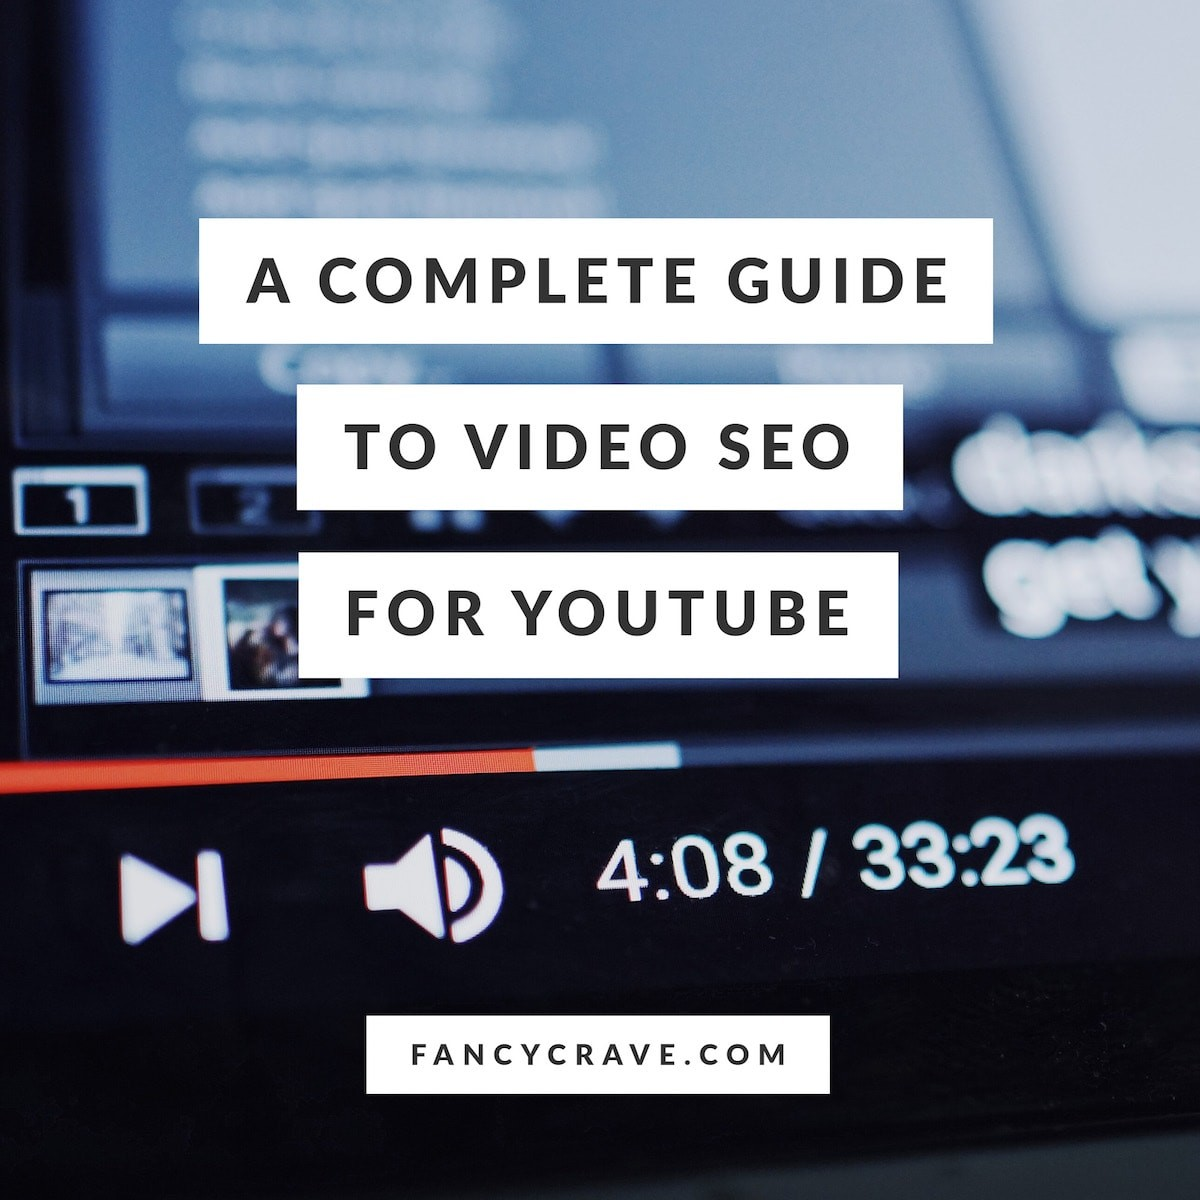 A complete guide to video SEO for Youtube